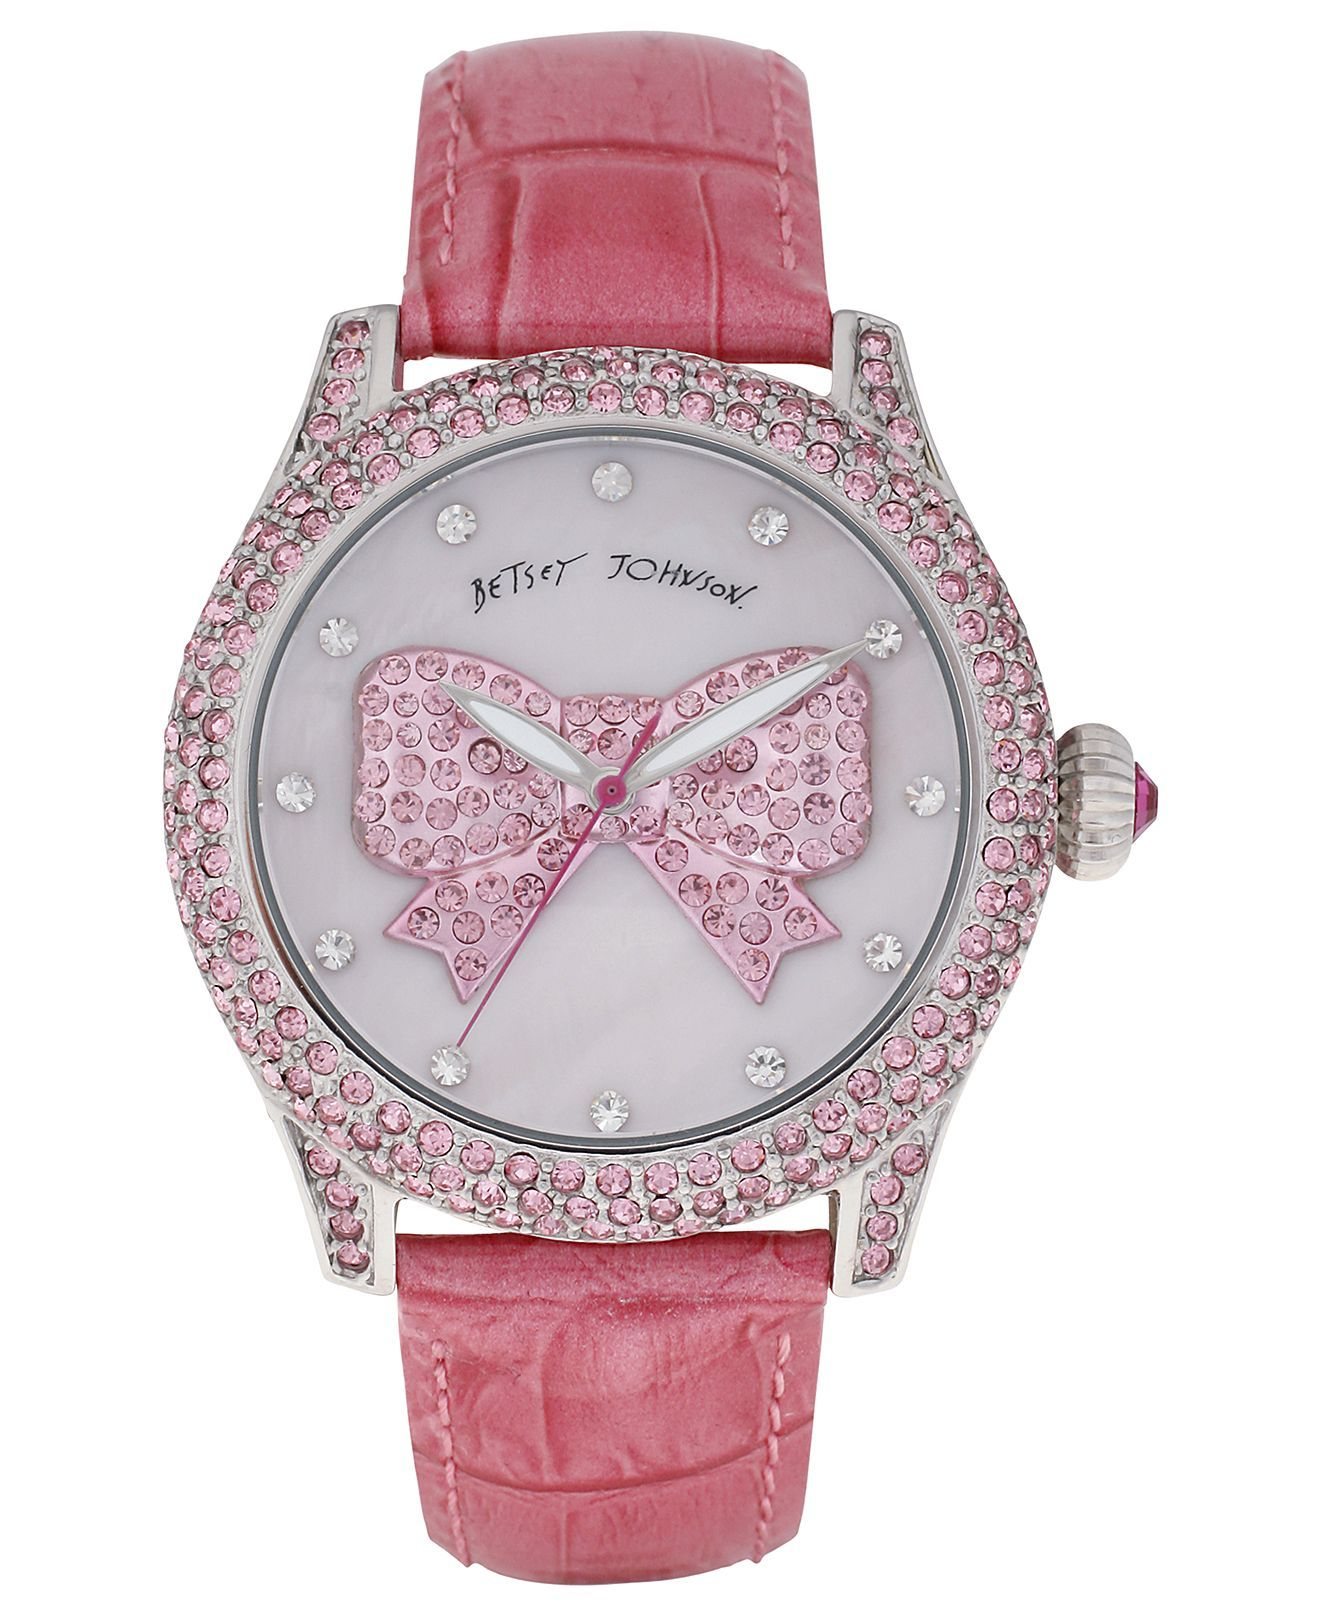 stella house buy fossil with fraser page online womens clear pink i a watch mini of women strap all watches s category stores